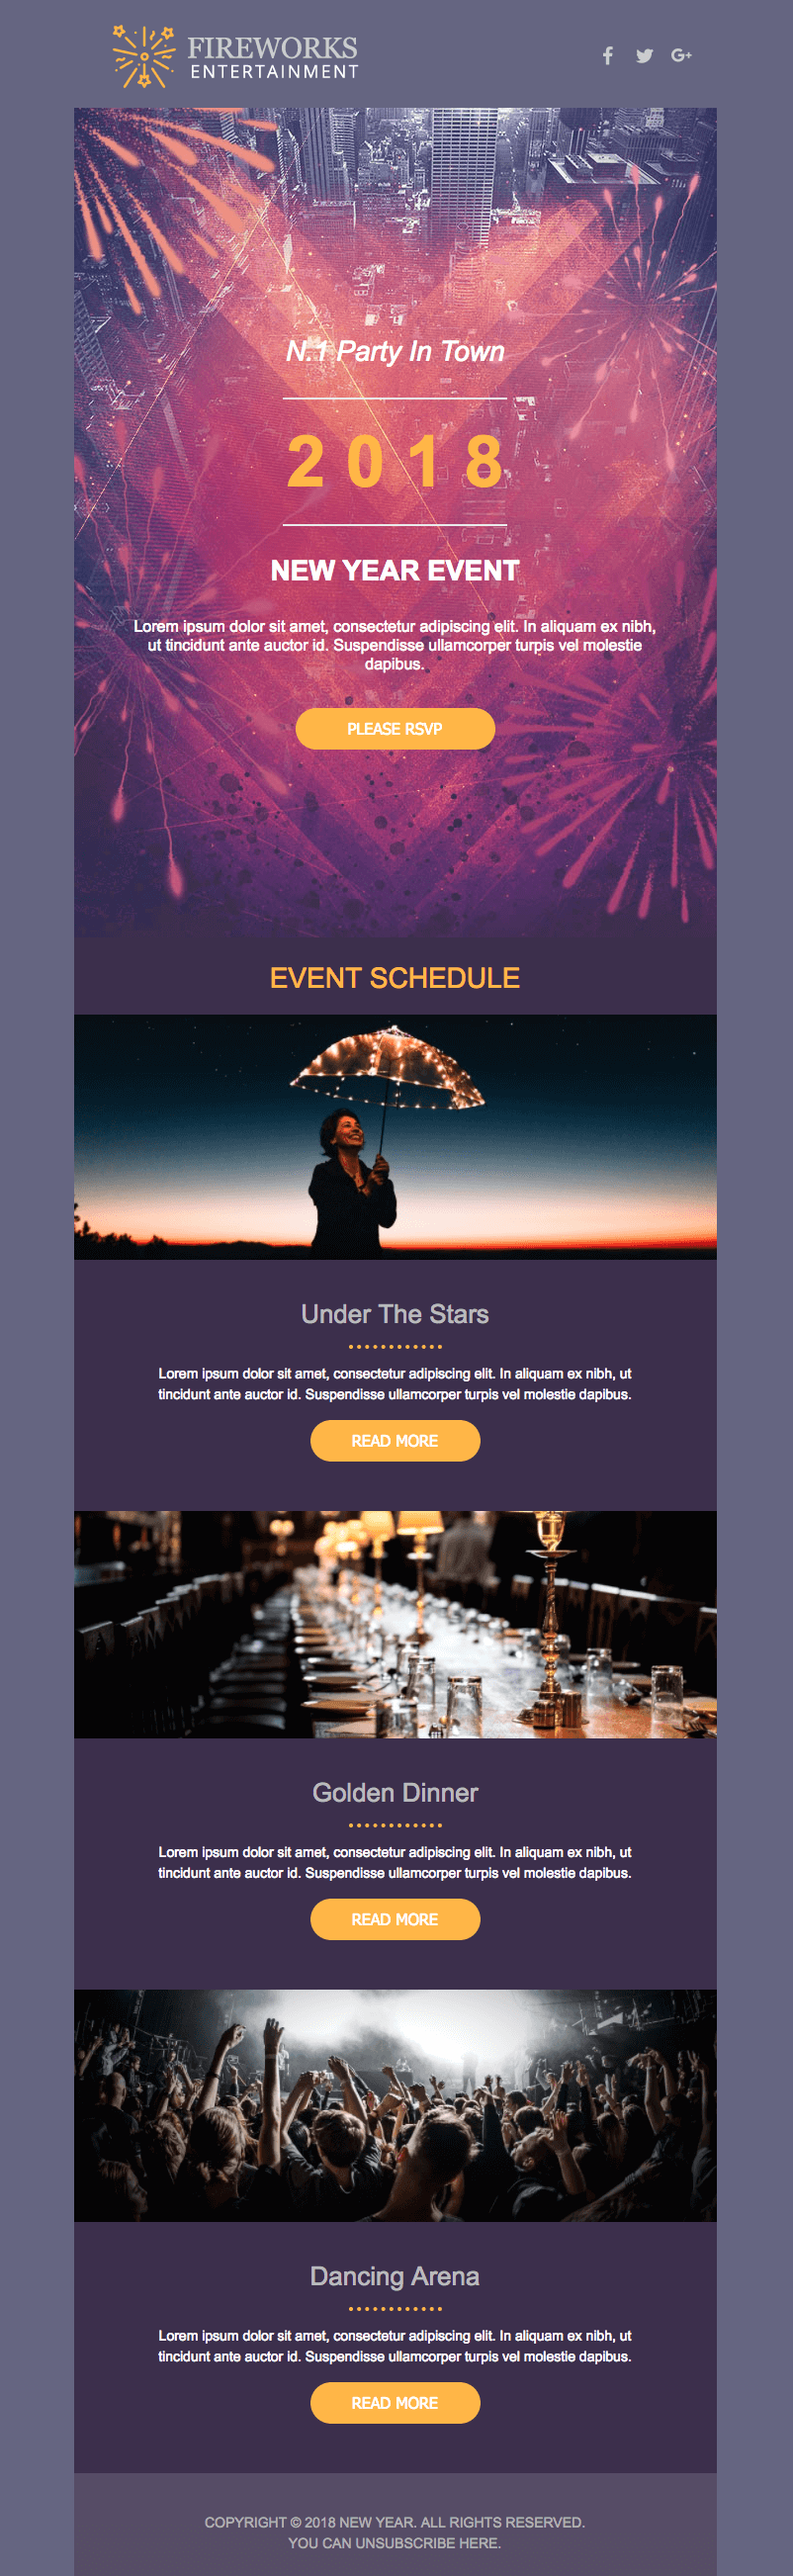 New Years Email Design Get A Free Template Fresh Tips - How to design an email template